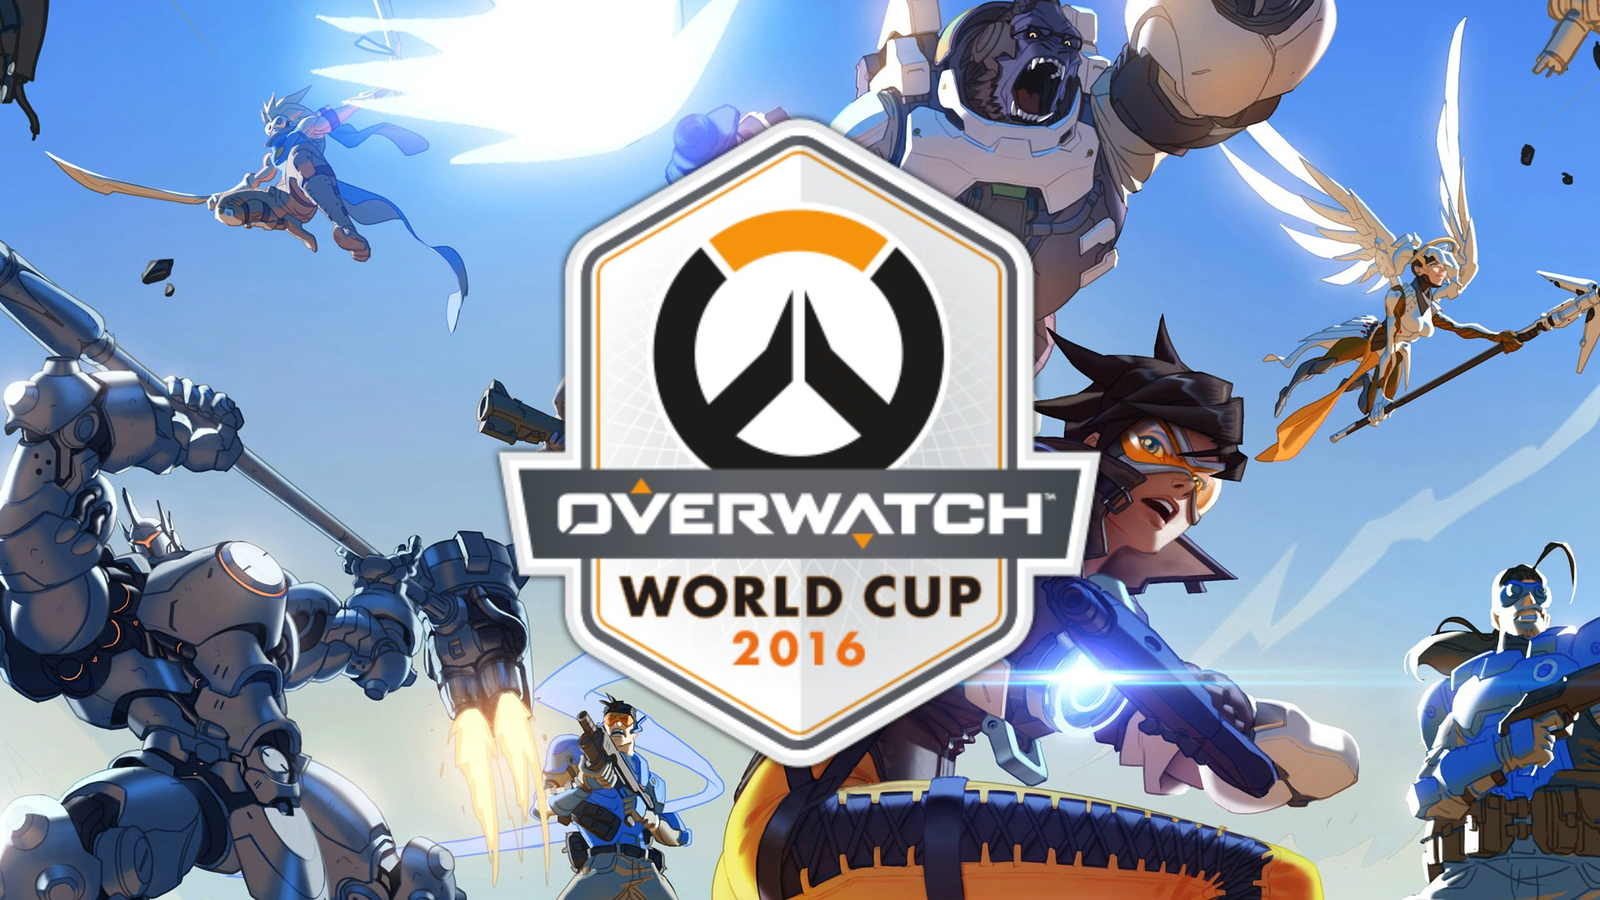 The Overwatch World Cup Is Going On Right Now